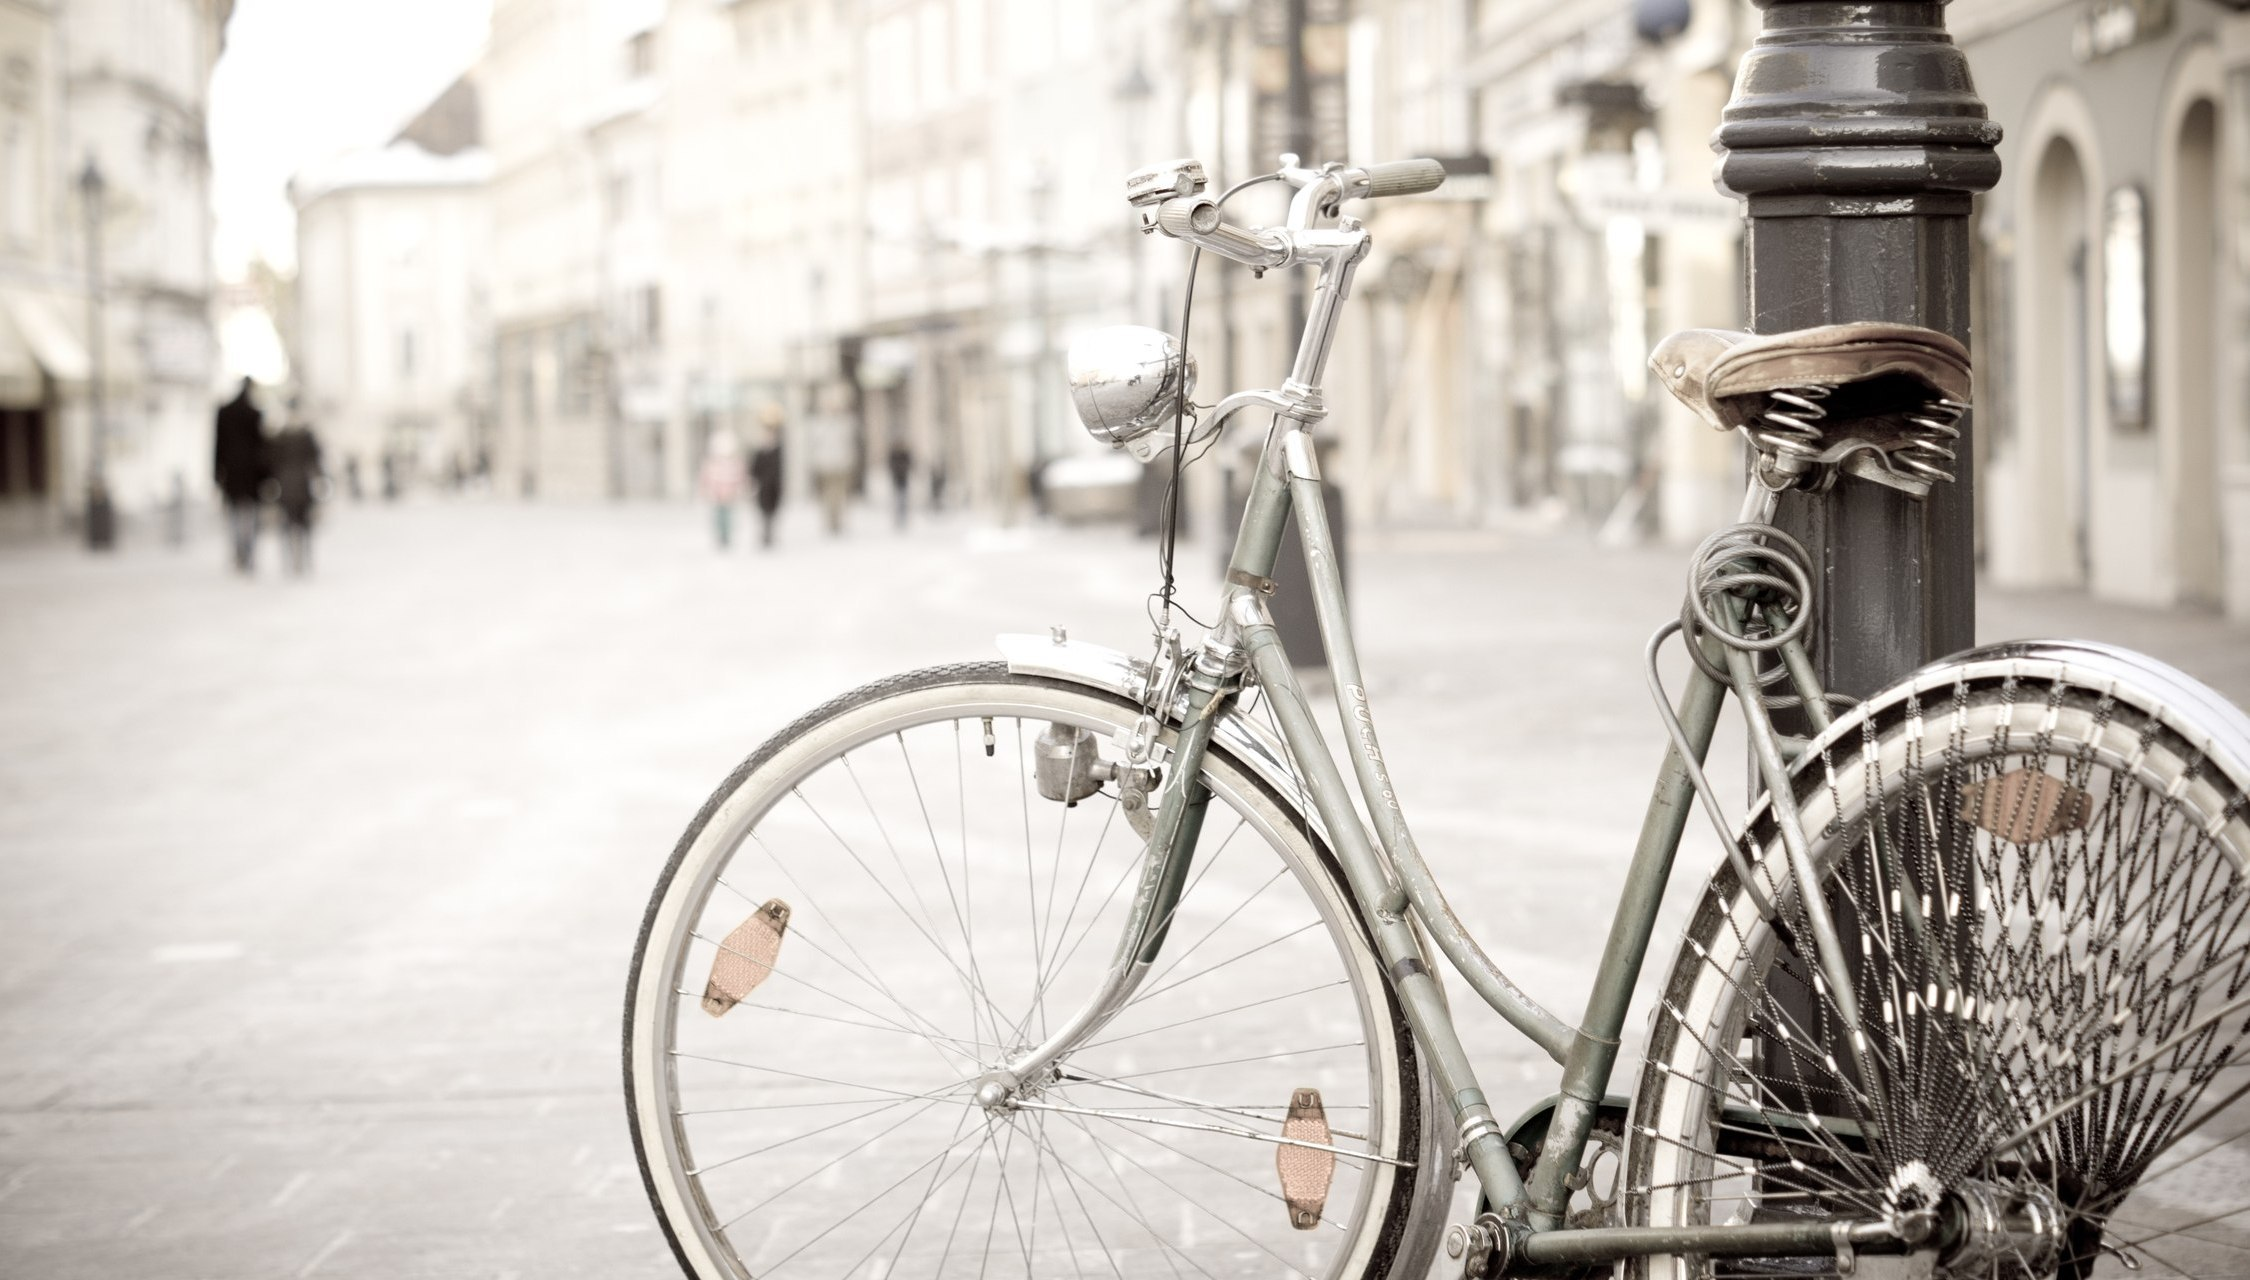 Old Bicycle In The City Center Wallpaper Compu 12489 Wallpaper High 2250x1280